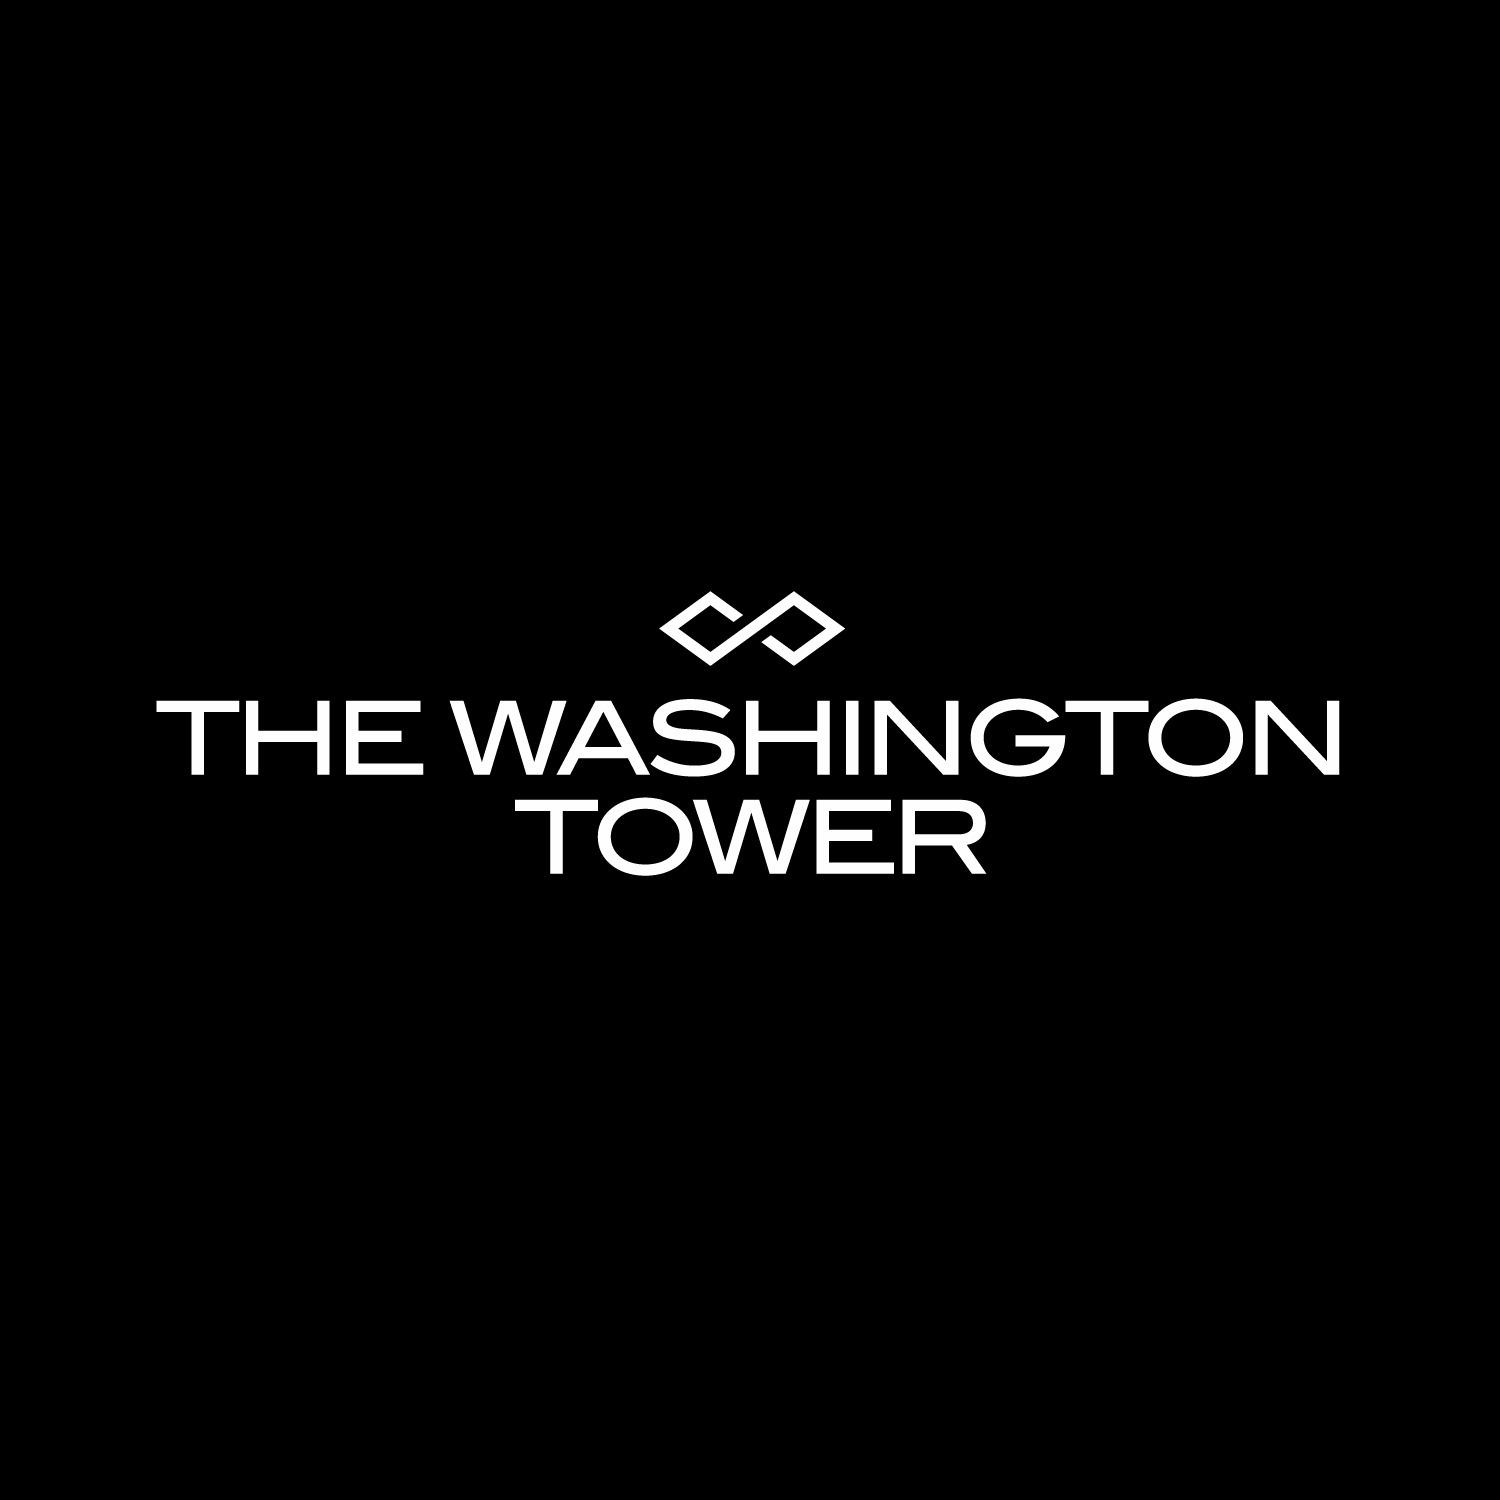 The Washington Tower